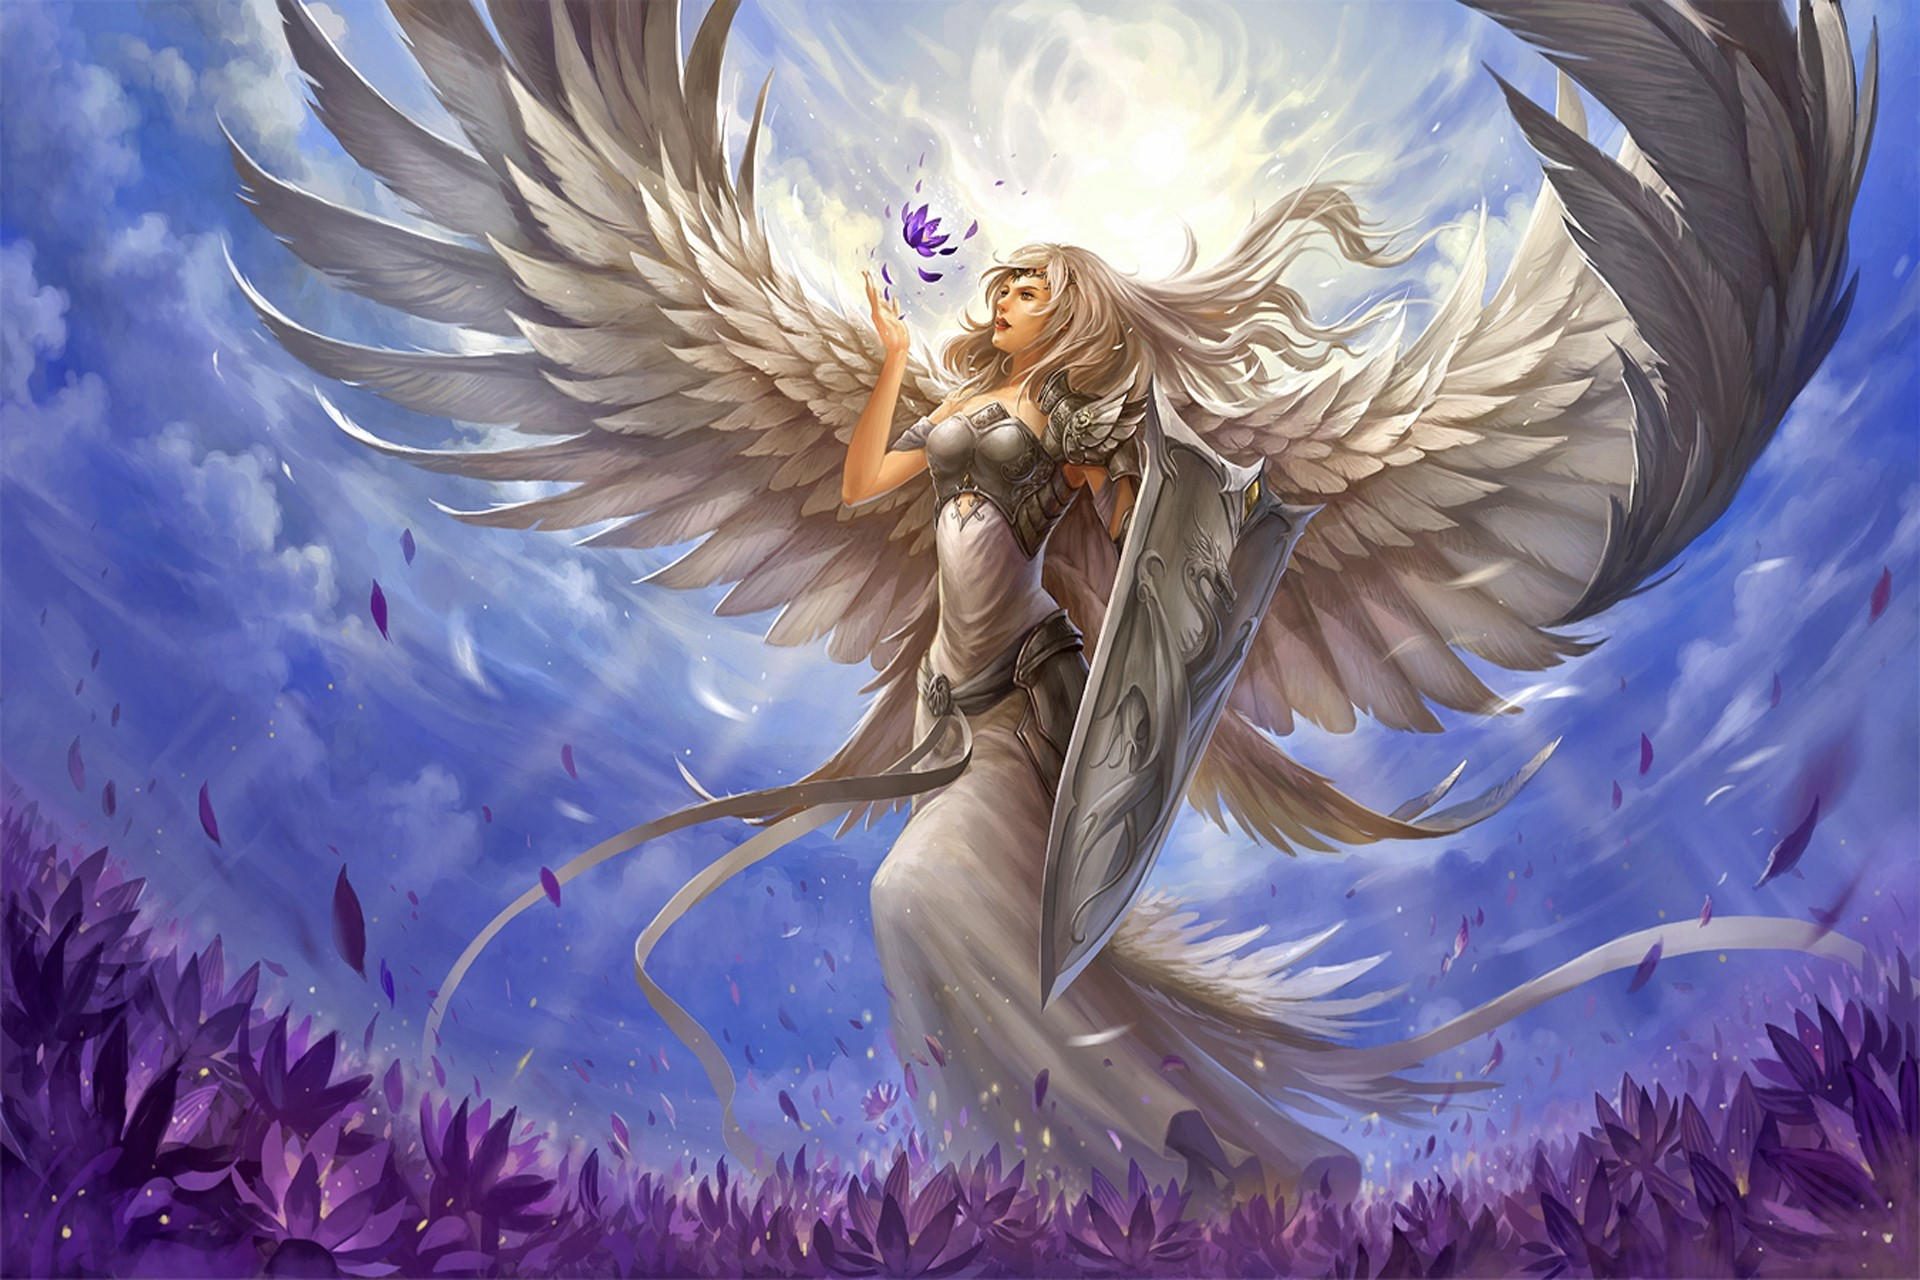 Anime Wallpaper Goddess Girl With Black And White Hair Angel Warrior Hd Wallpaper Background Image 1920x1280